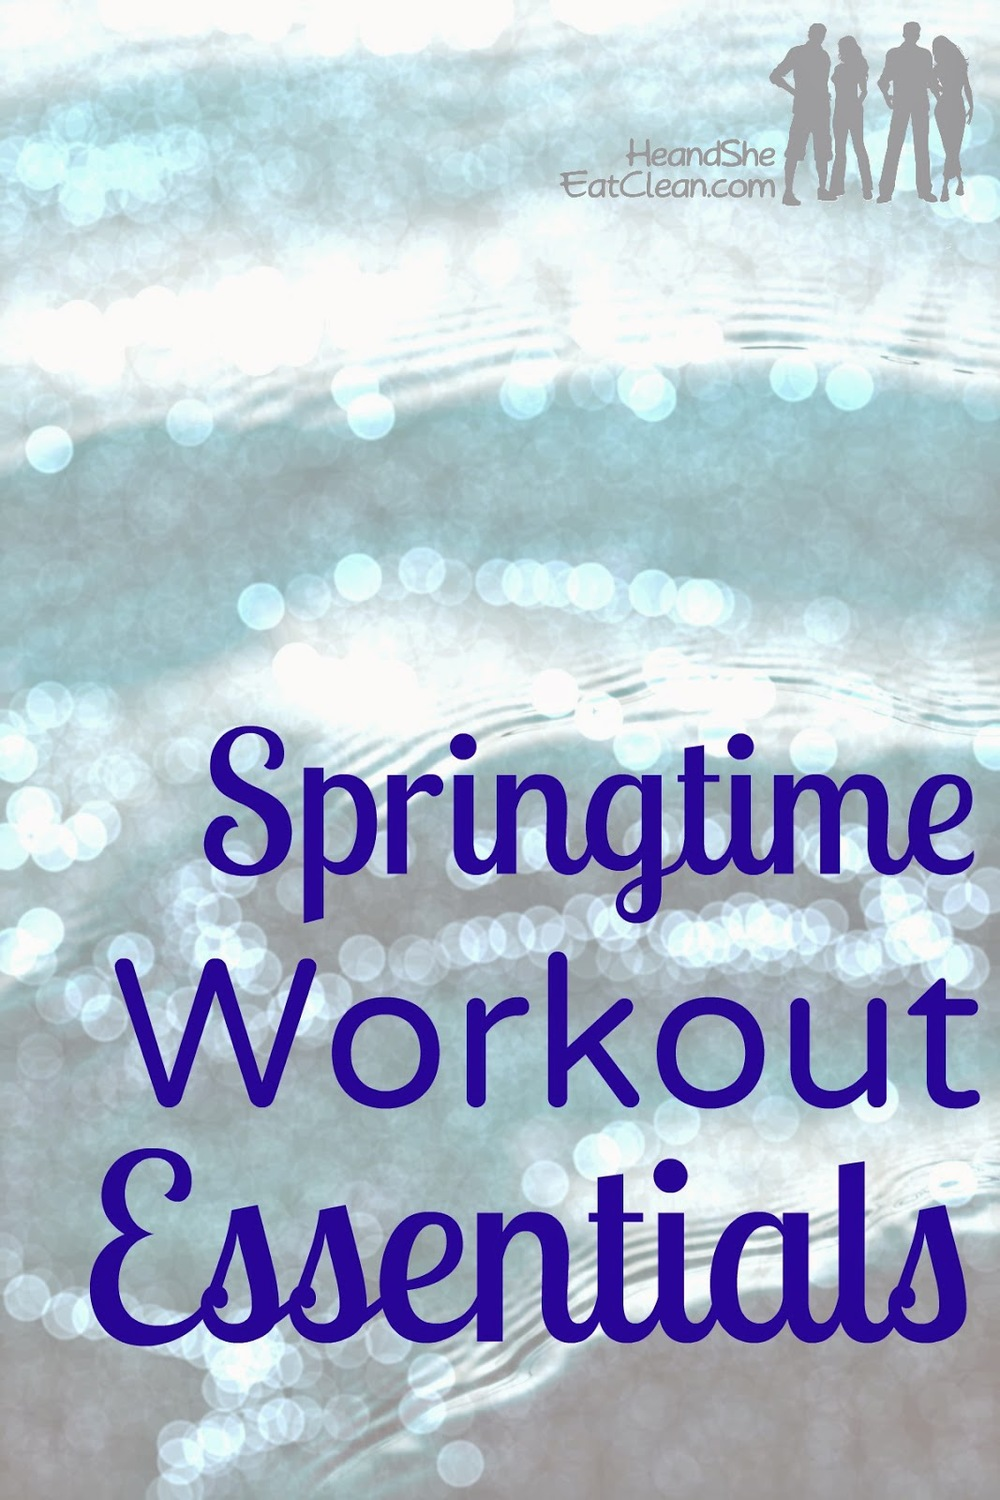 Springtime-Outdoor-Outside-Essentials-for-Working-Workout-Out-What-You-Need-He-She-Eat-Clean.jpg